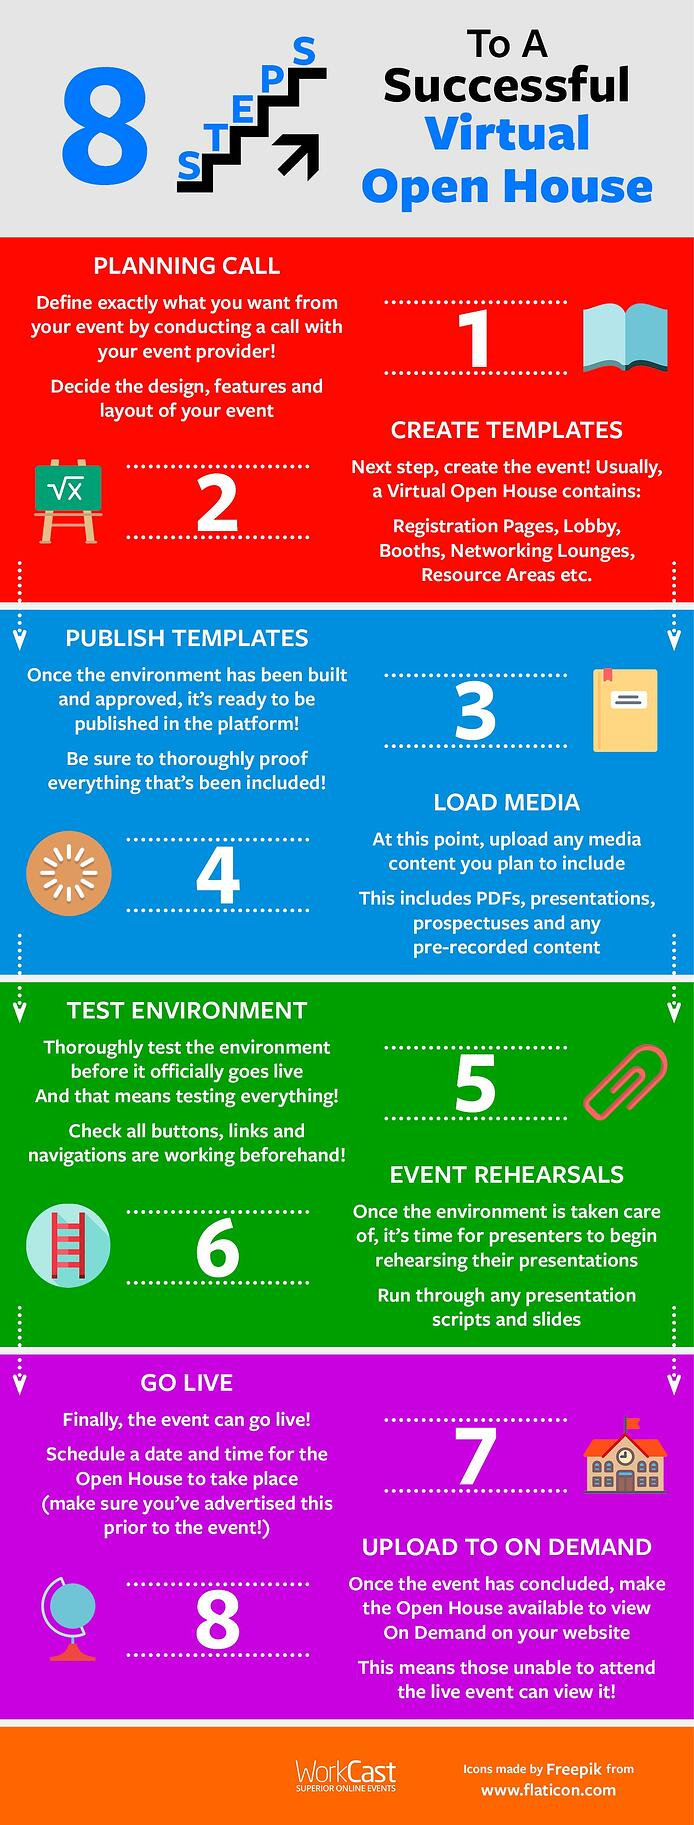 8 Steps To A Successful Open House FINAL.jpg